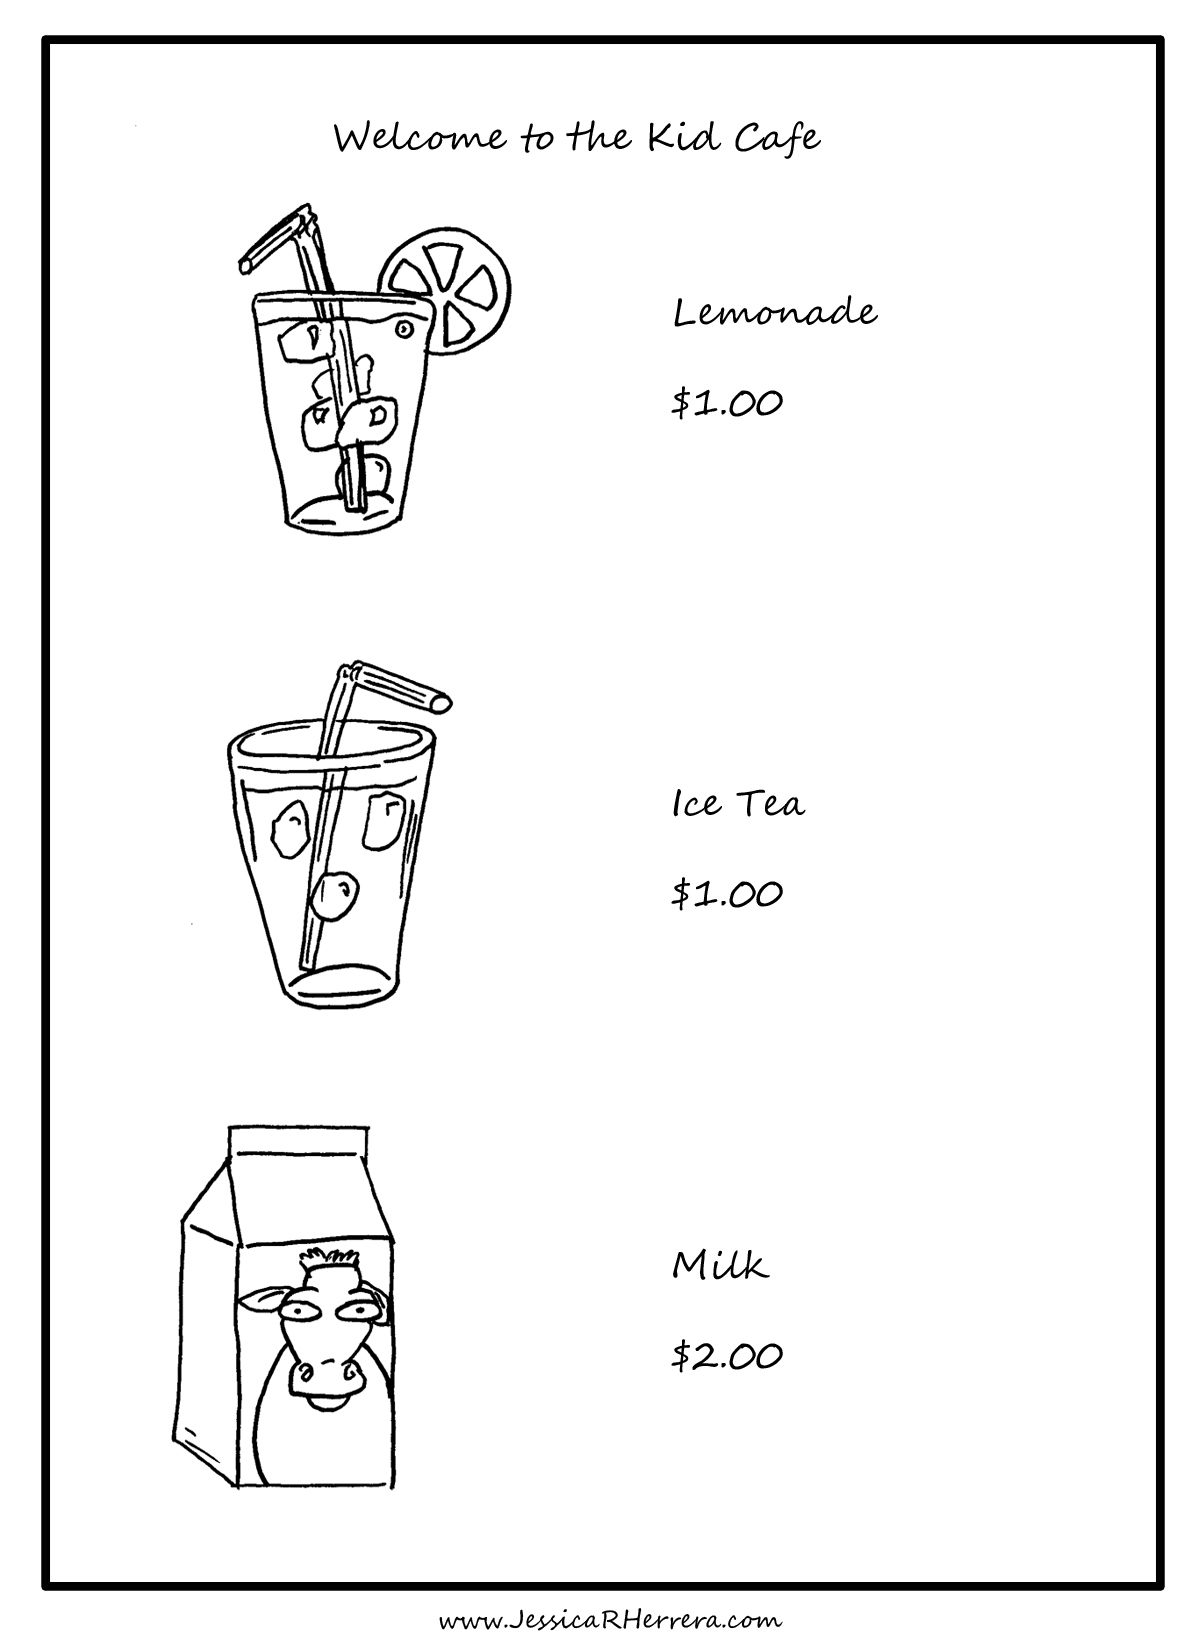 Drink Menu Coloring Page For Kids